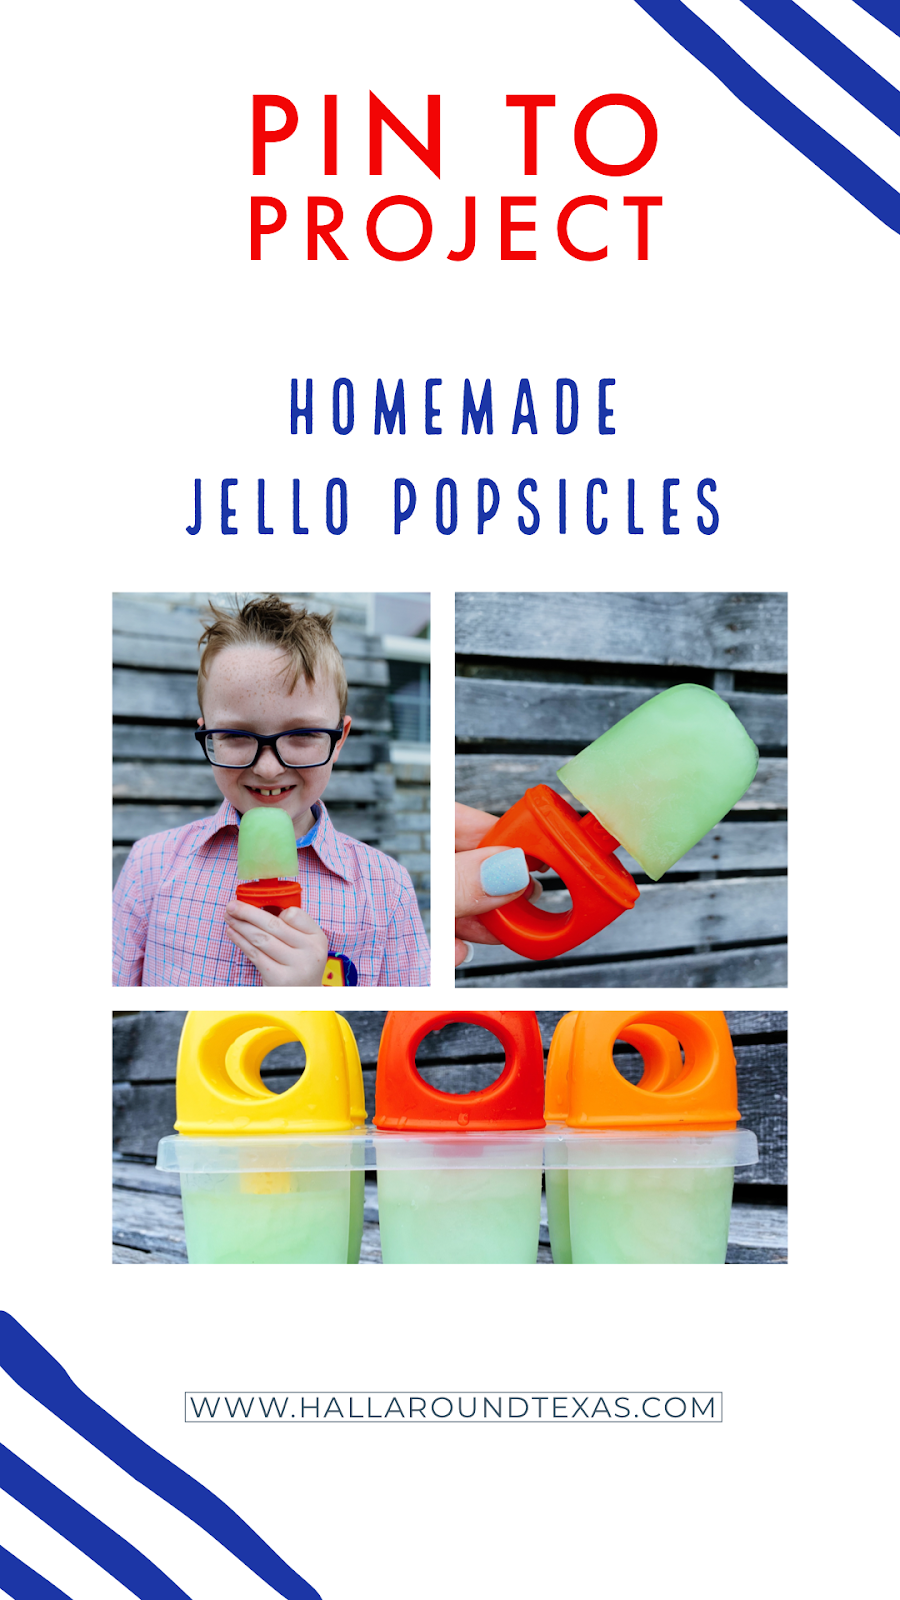 Hall Around Texas Homemade Jello Popsicles